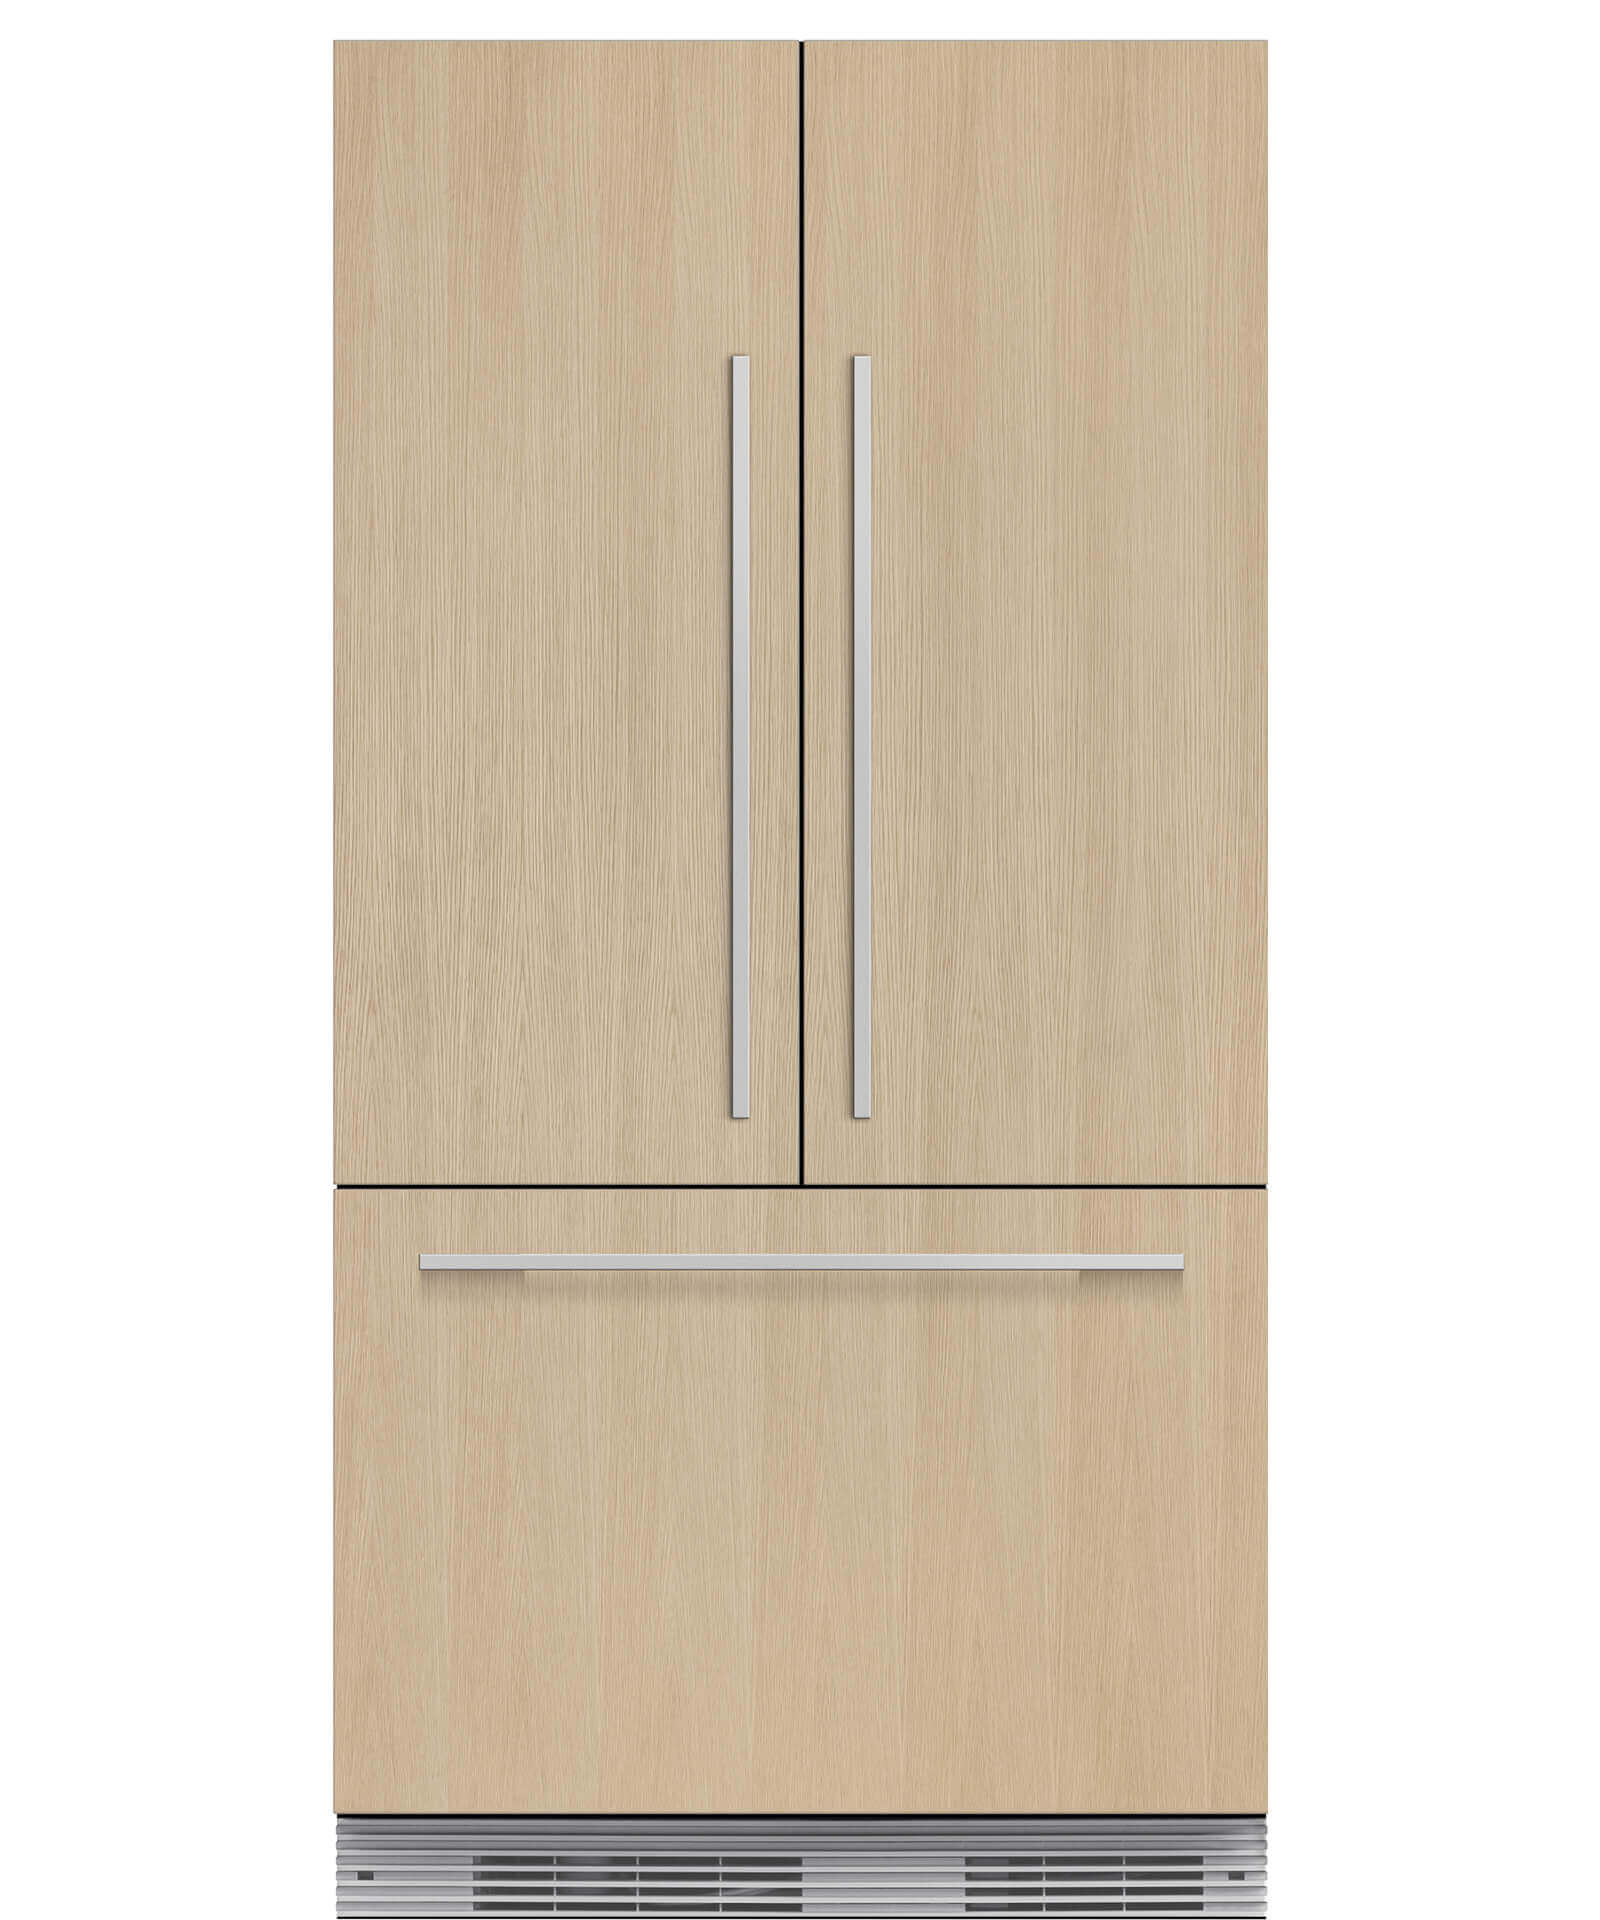 RS90A1 - French Door Fridge Freezer | Fisher & Paykel NZ